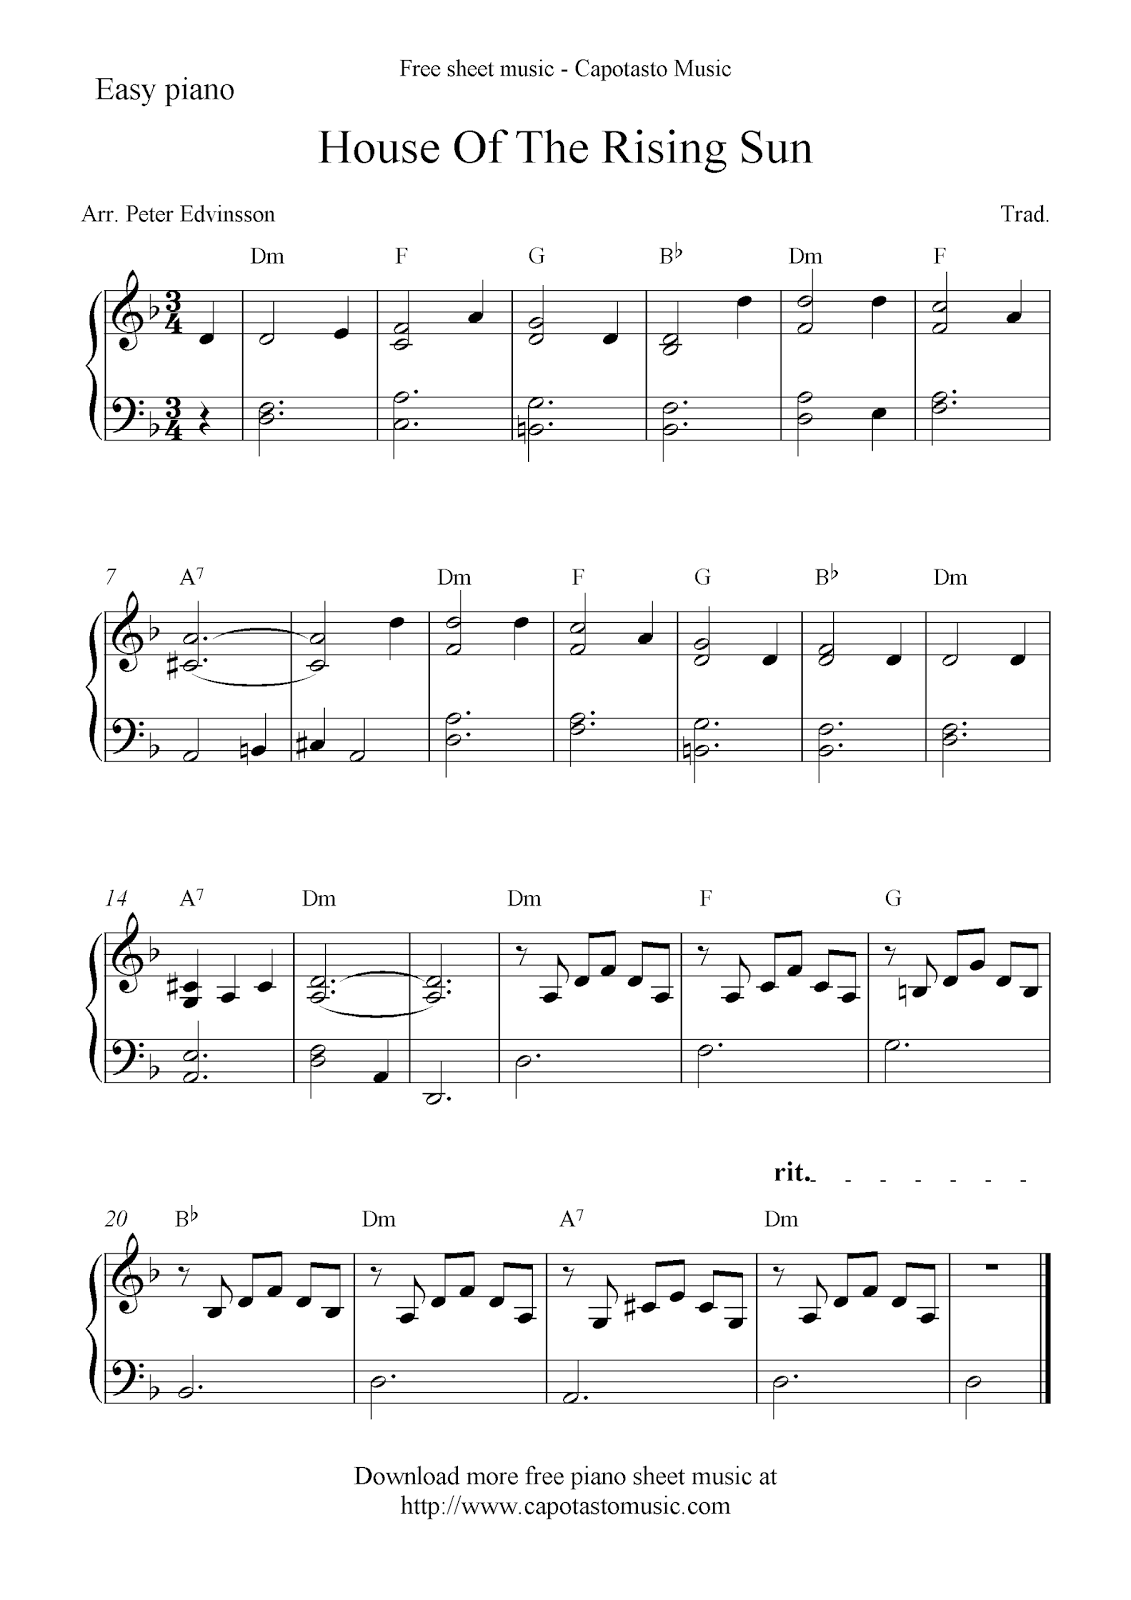 Free piano sheet music score, House Of The Rising Sun